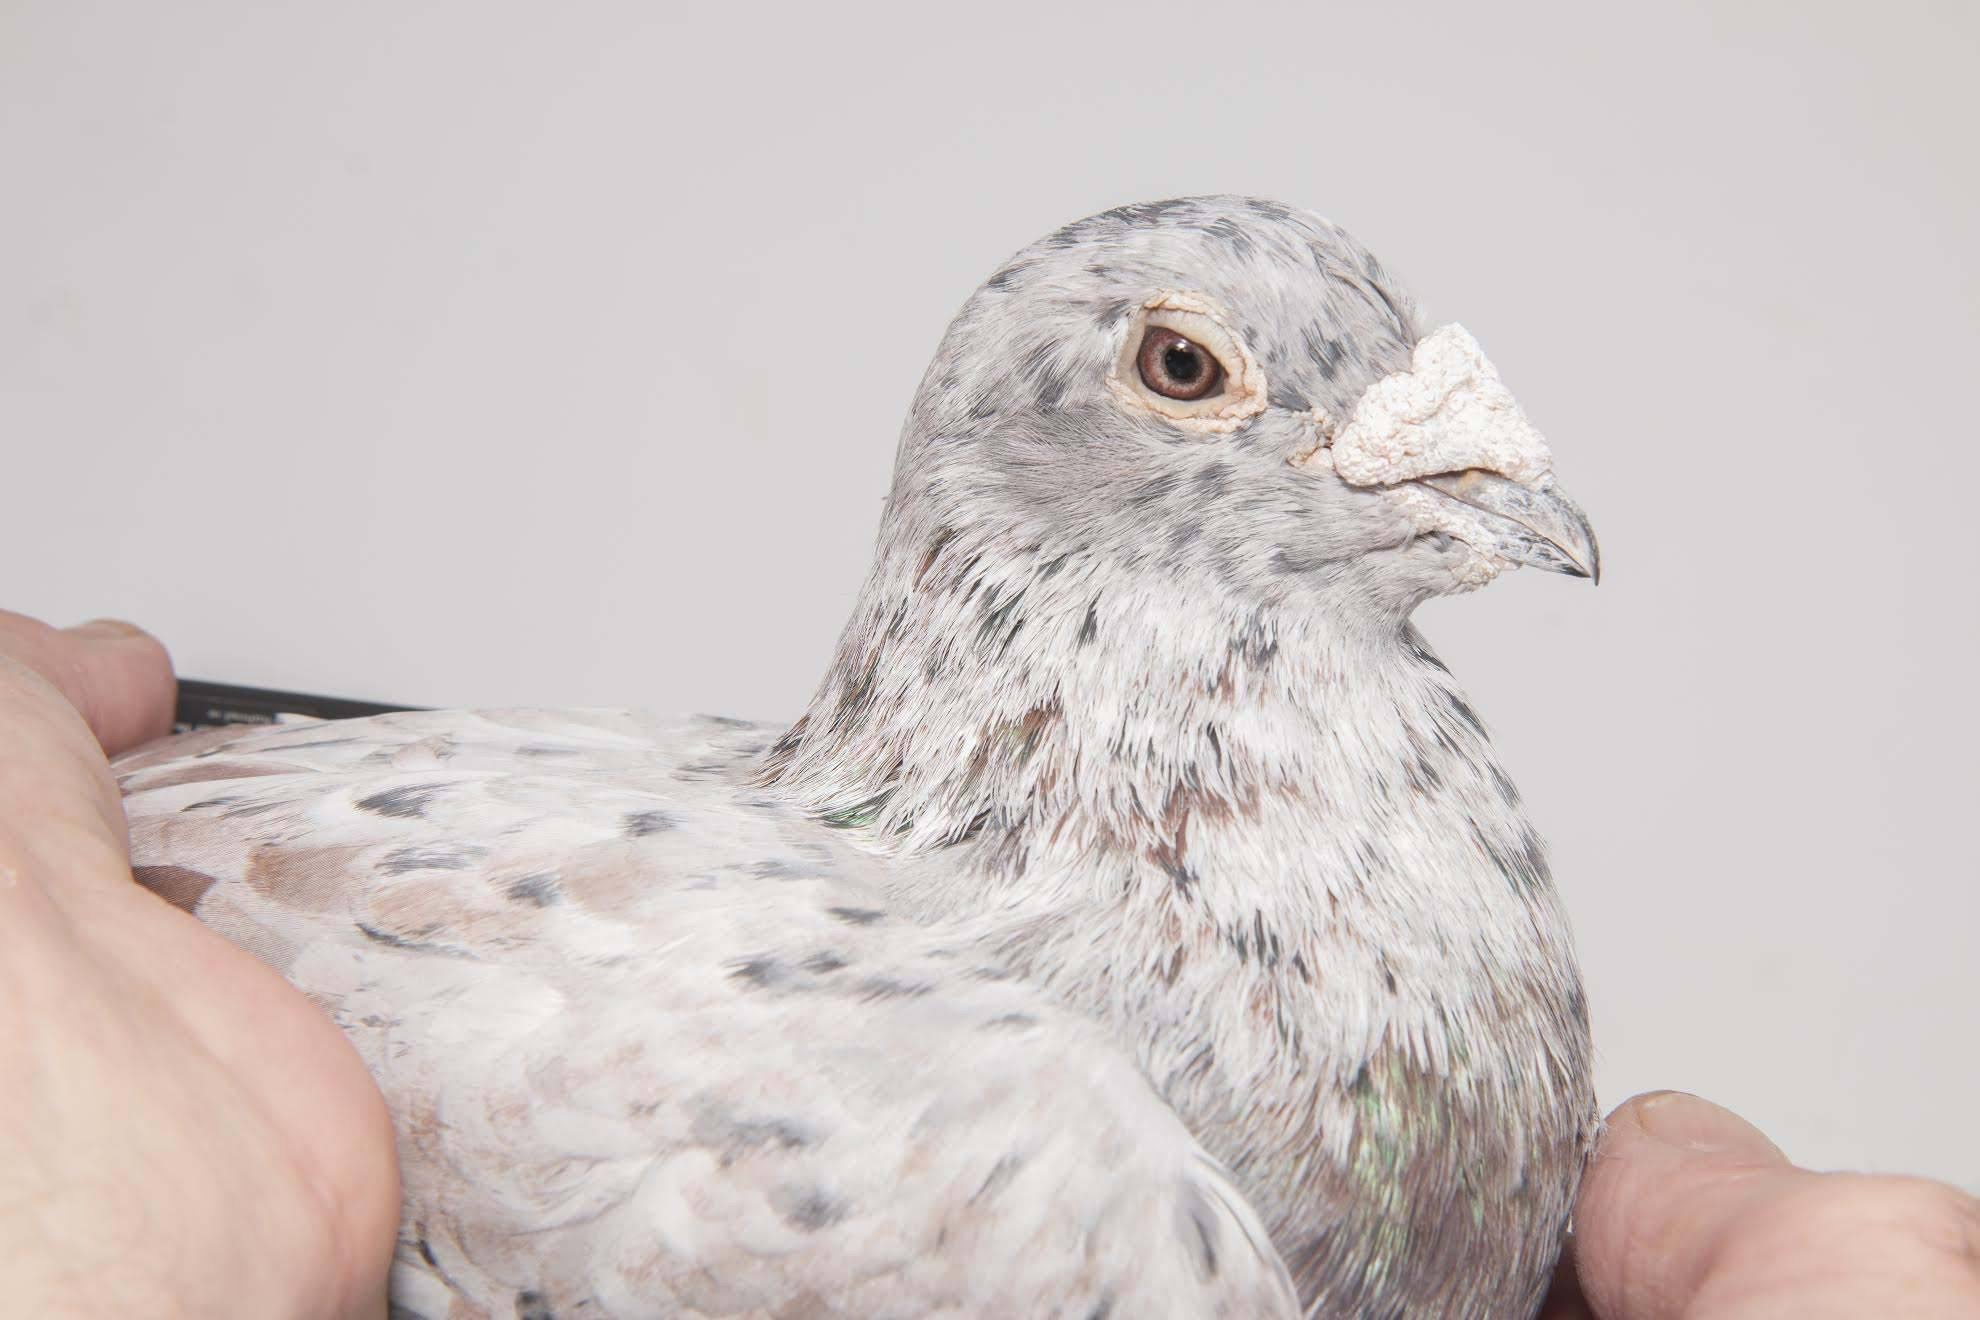 IT 18 408100 F - Mr Expensive 1 Ace pigeon North Sea OLR x daughter Bear David Clausing